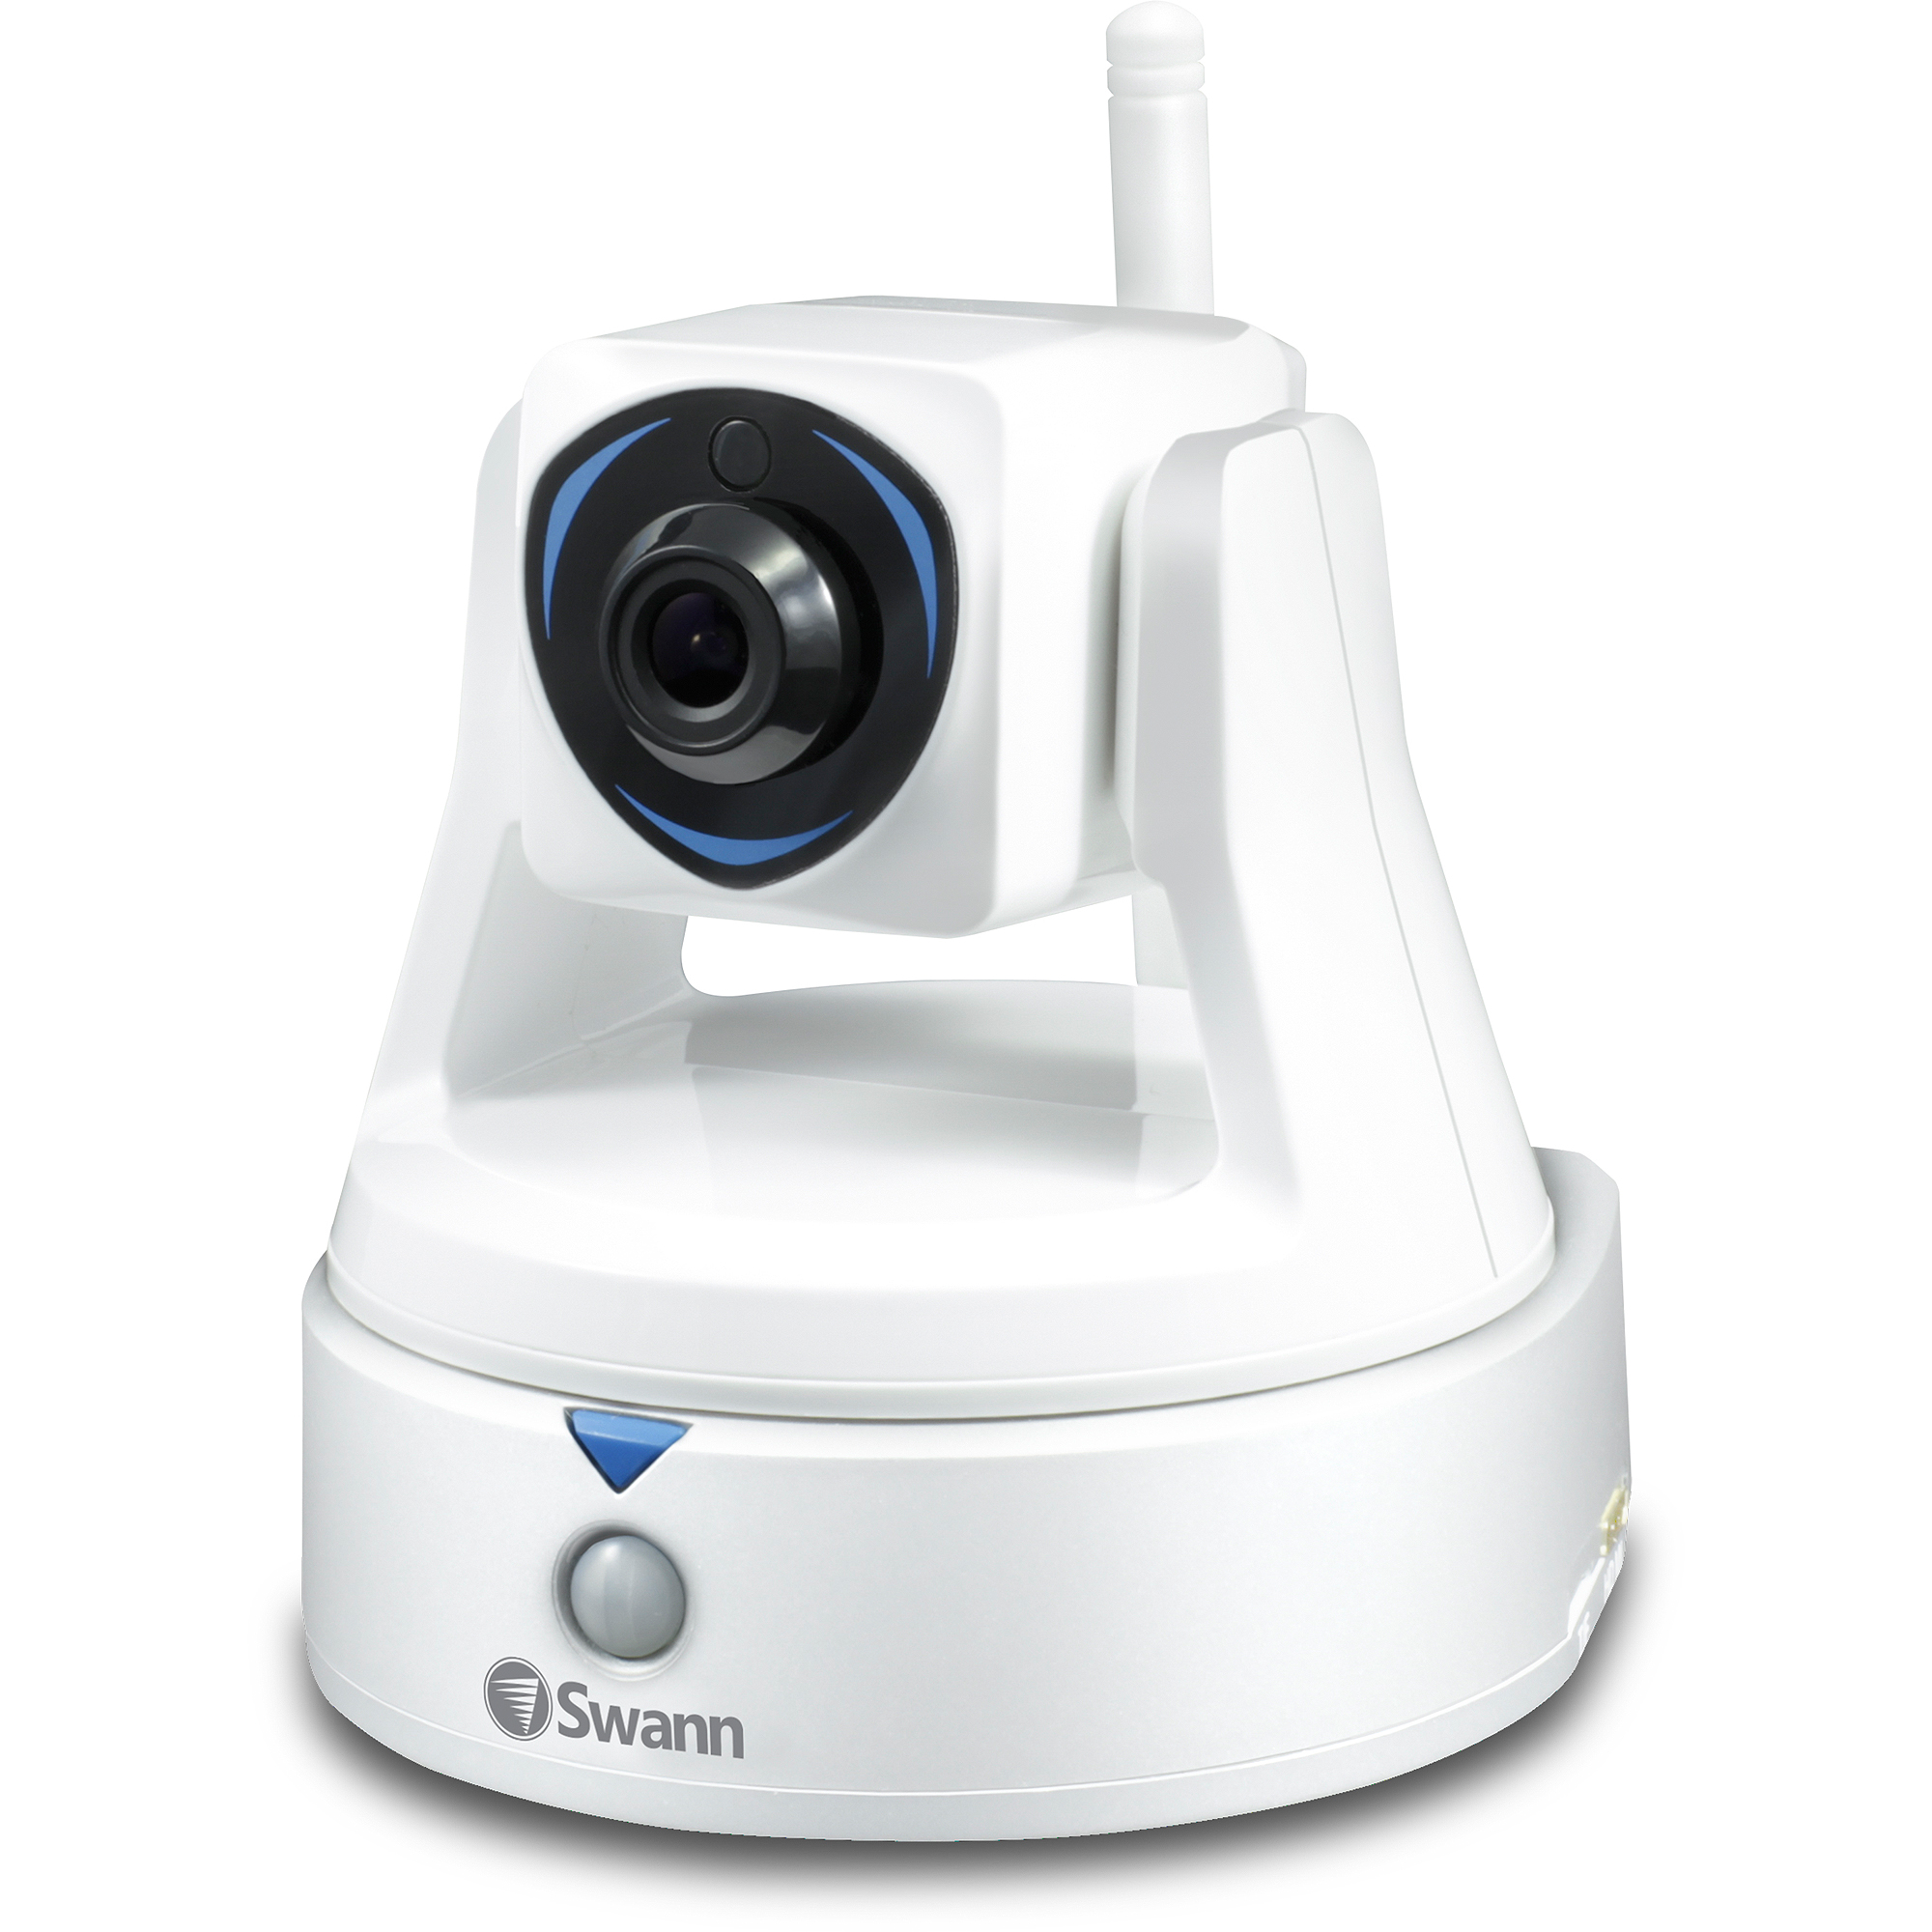 swann hd security camera 720p